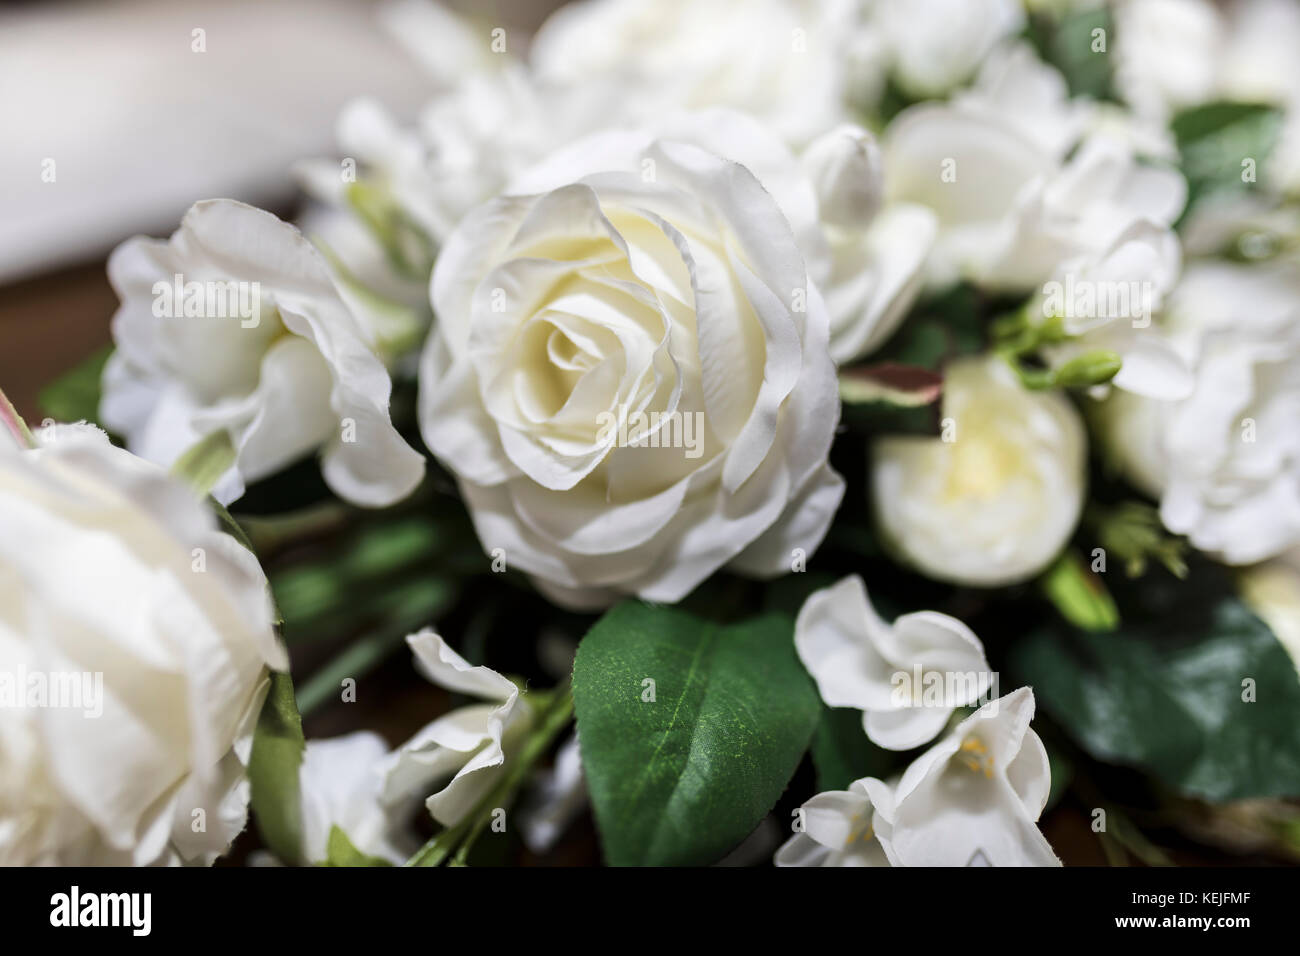 White Roses Wedding Bouquet Of Flowers Shot Close Up With A Shallow